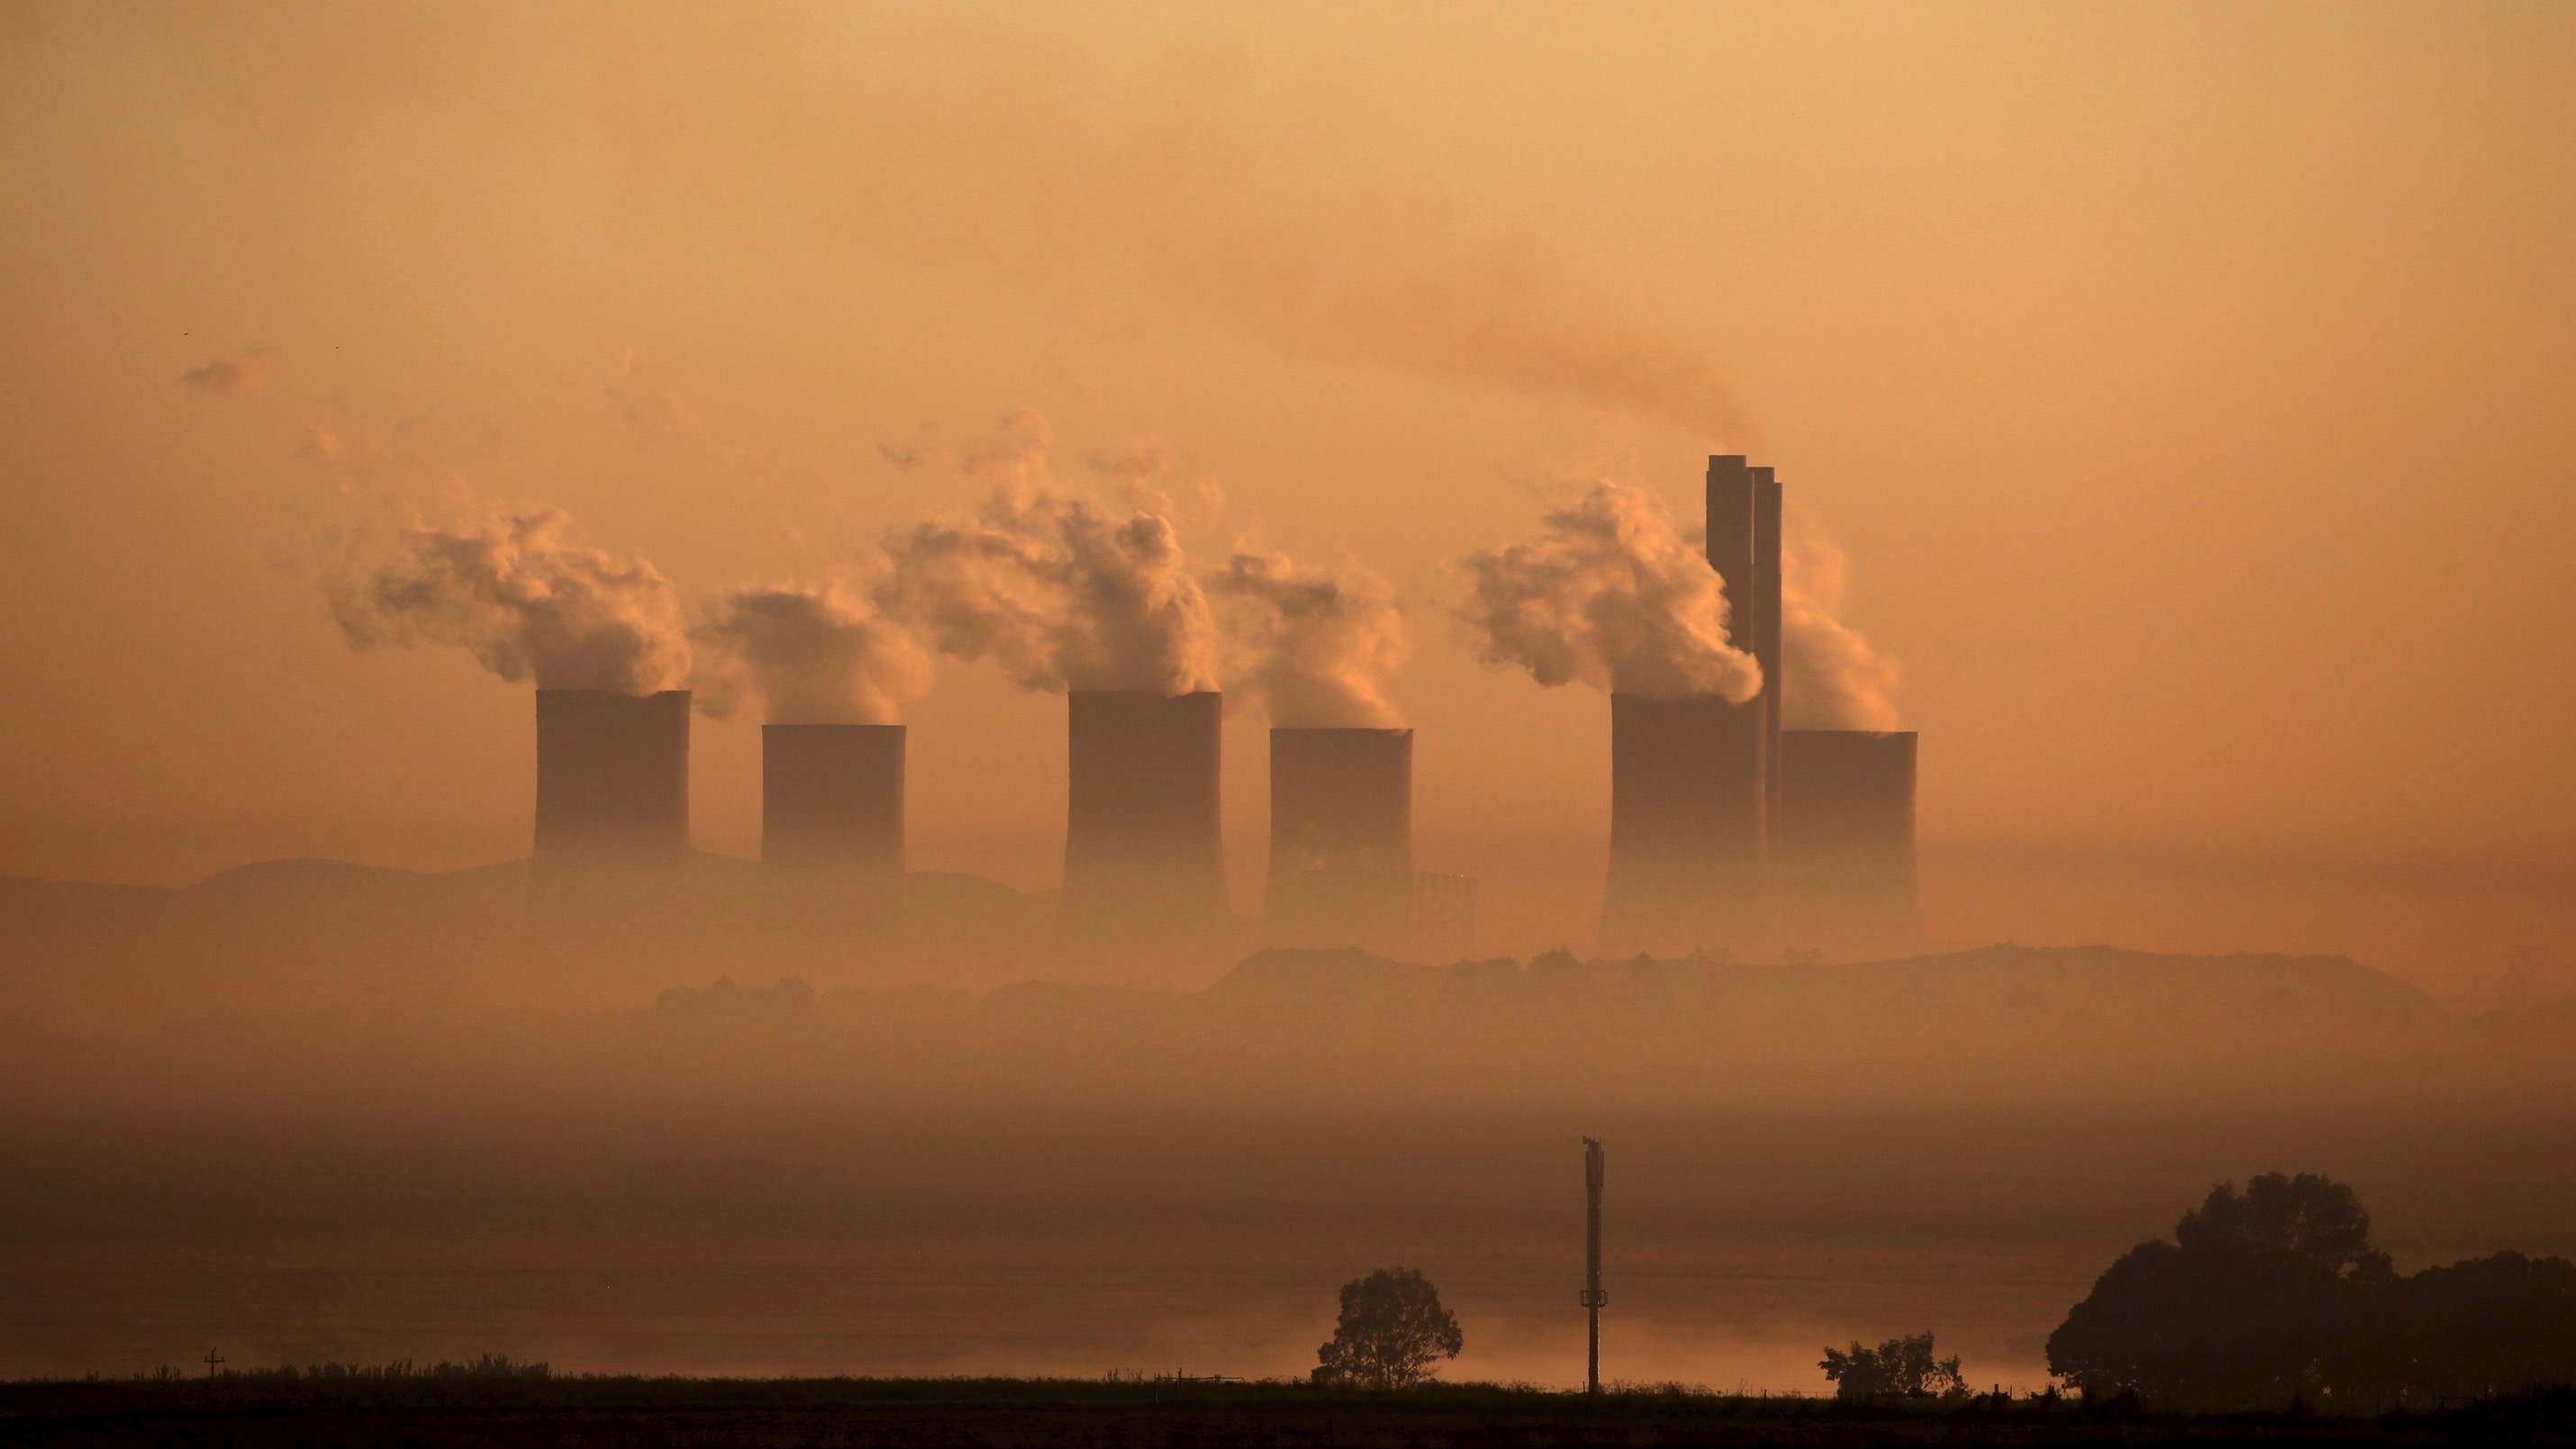 Steam rises at sunrise from the Lethabo Thermal Power Station, an Eskom coal-burning power station  near Sasolburg in the northern Free State province, March 2, 2016. South Africa's energy regulator said on Tuesday it had allowed state-owned power firm Eskom to raise tariffs by 9.4 percent in the 2016/17, less than what had been requested by the cash-strapped utility.